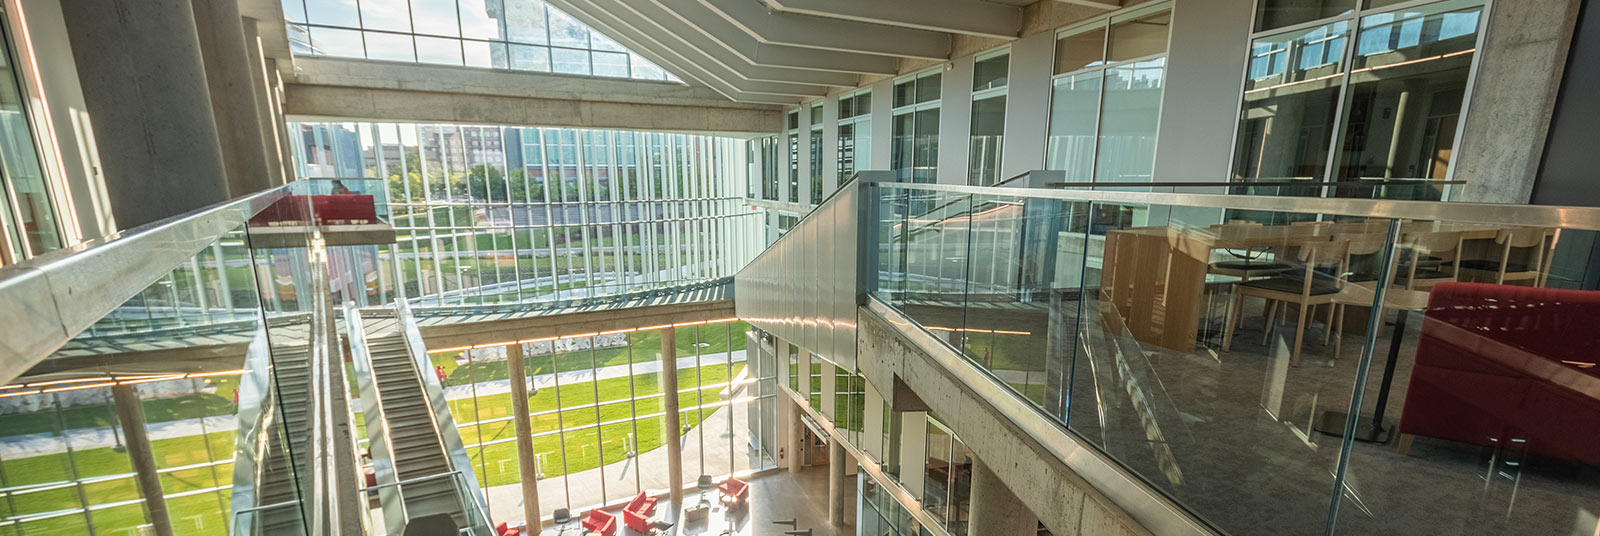 The view from the top of the atrium in the University of Cincinnati Health Sciences Building.